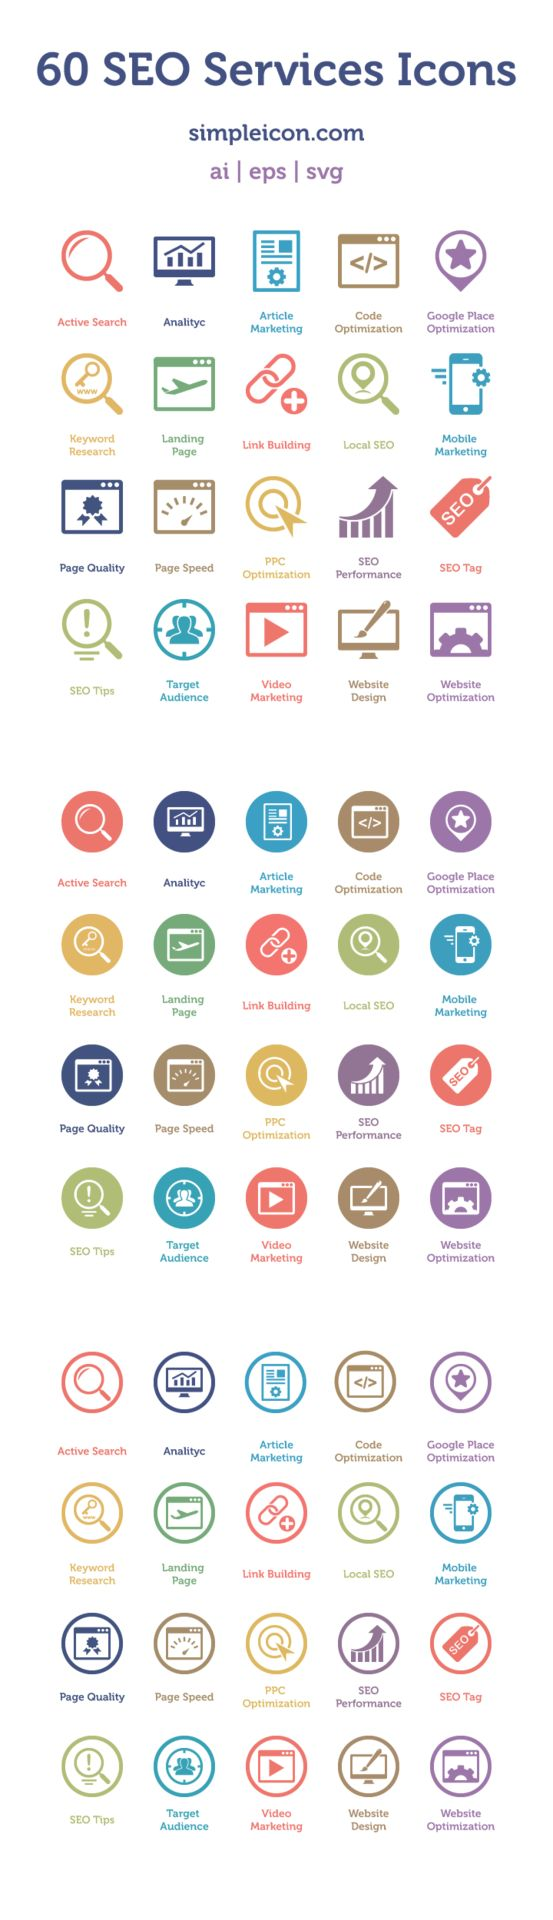 Web design freebies, 60 Free SEO Services Icons http://www.corsowebdesignerfreelance.it